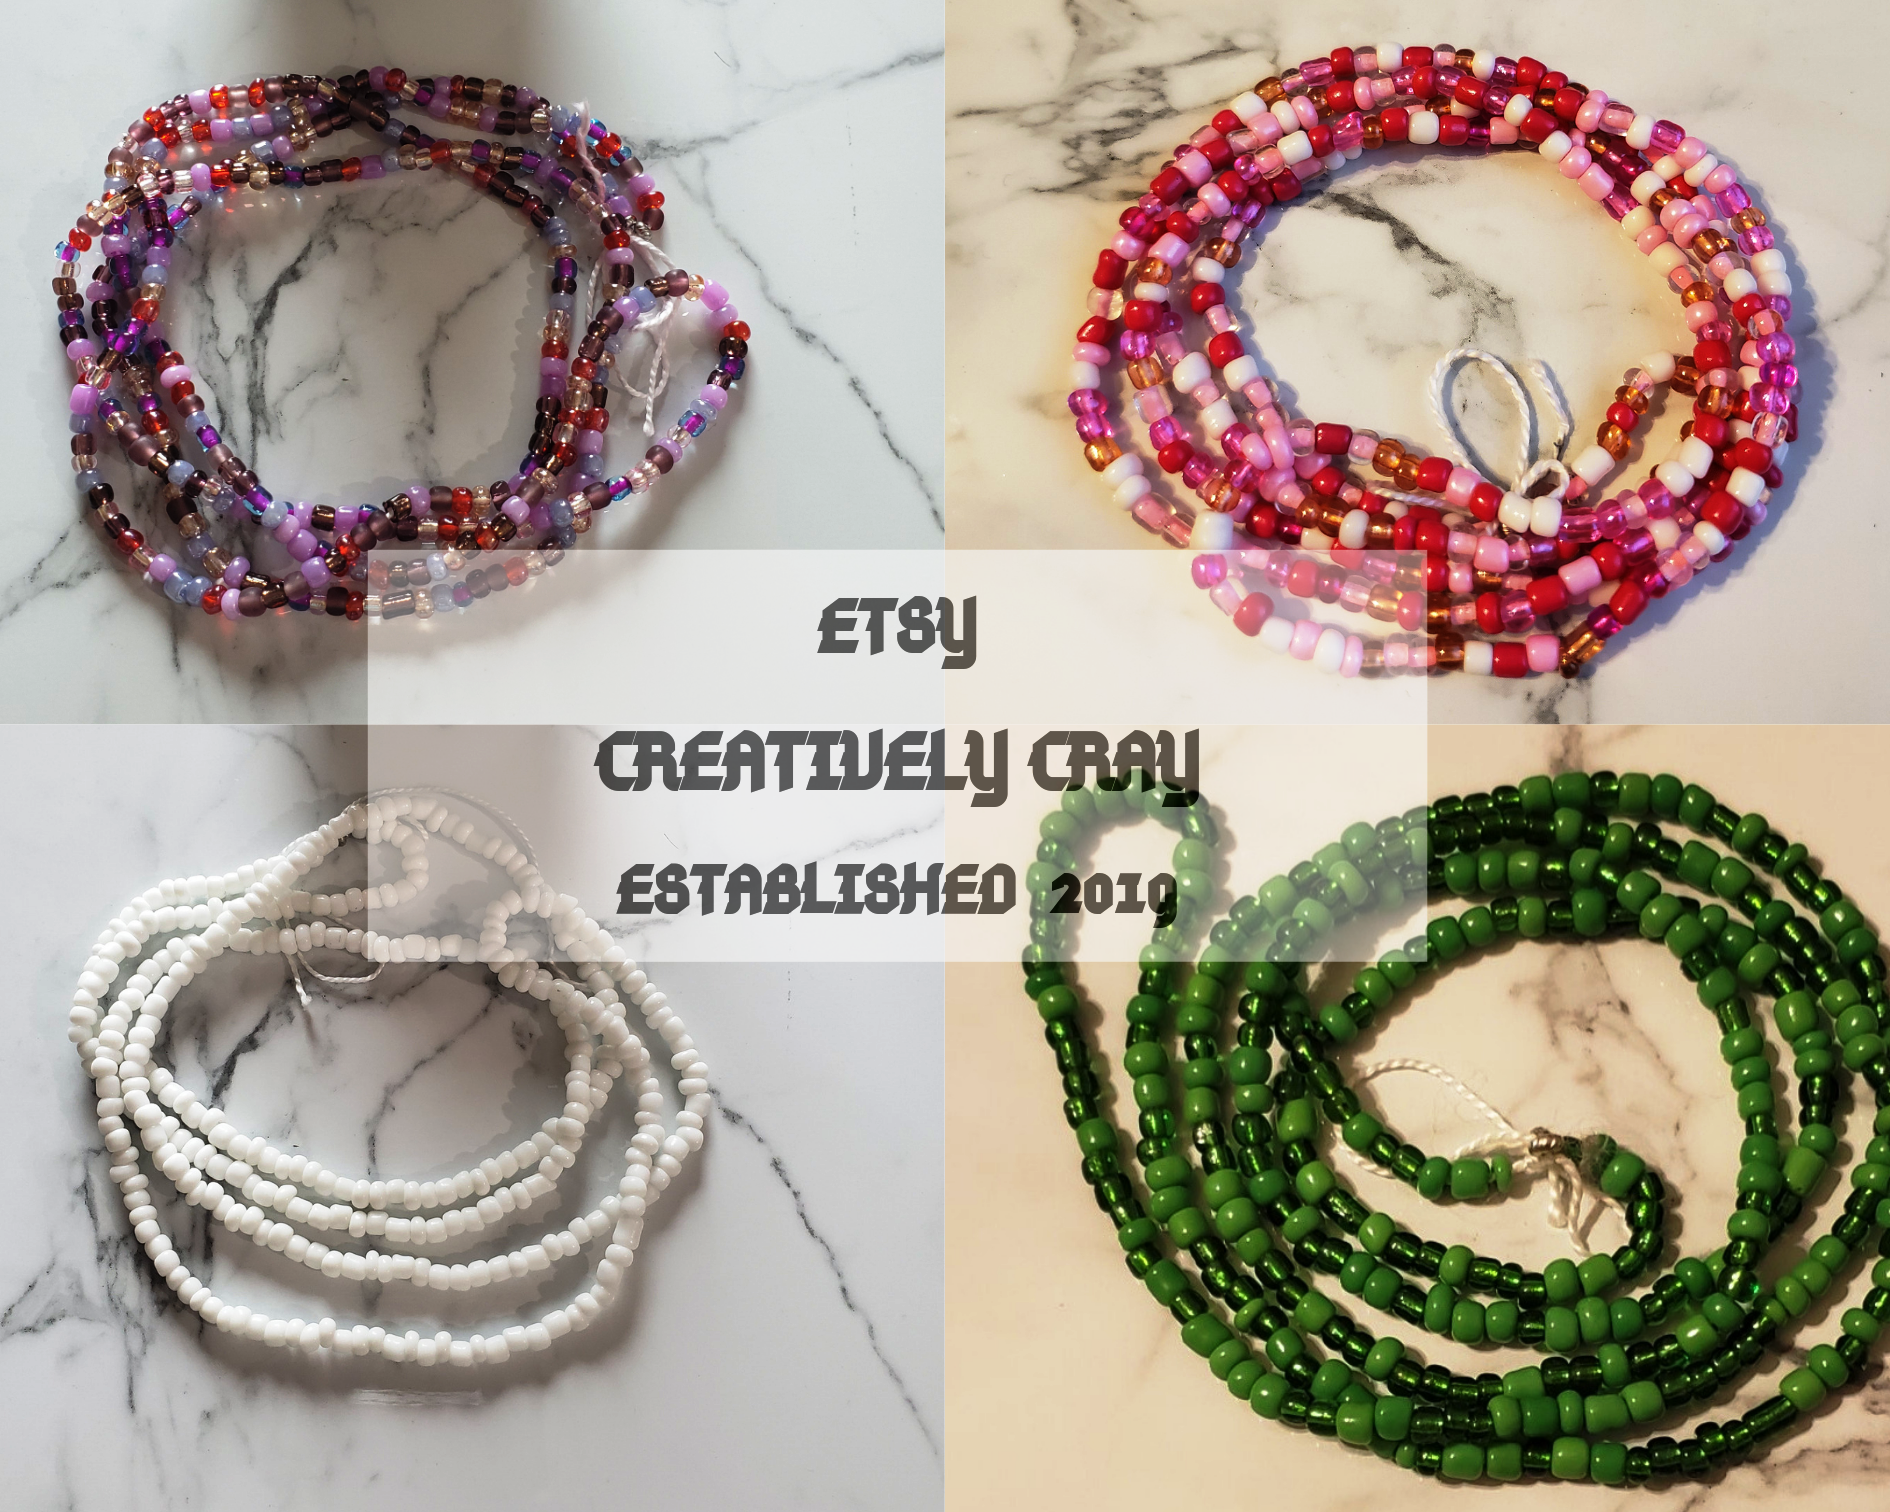 Etsy Store Waist Beads.png